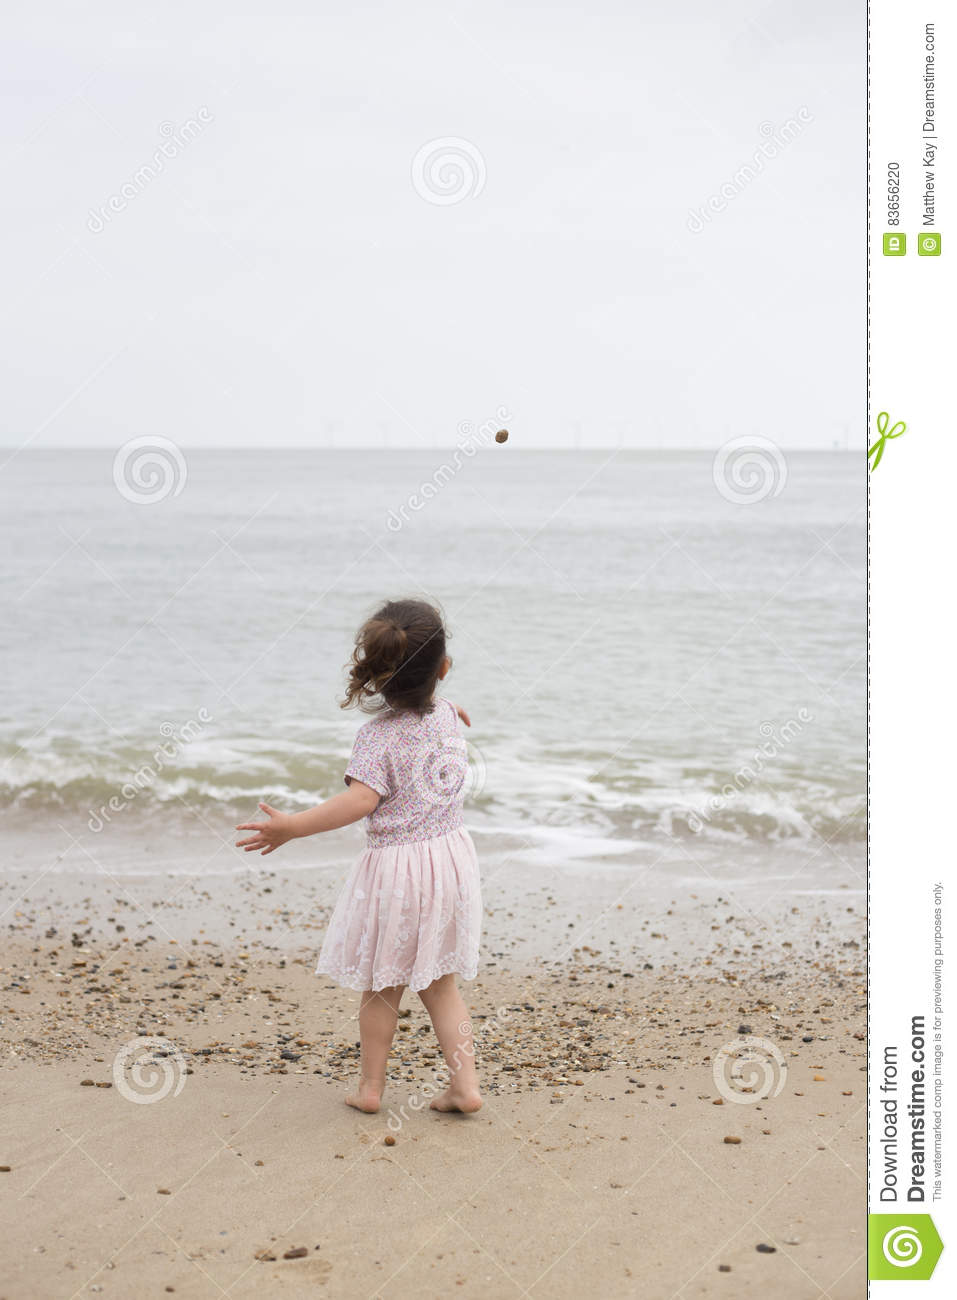 Young girl throwing a stone into the sea